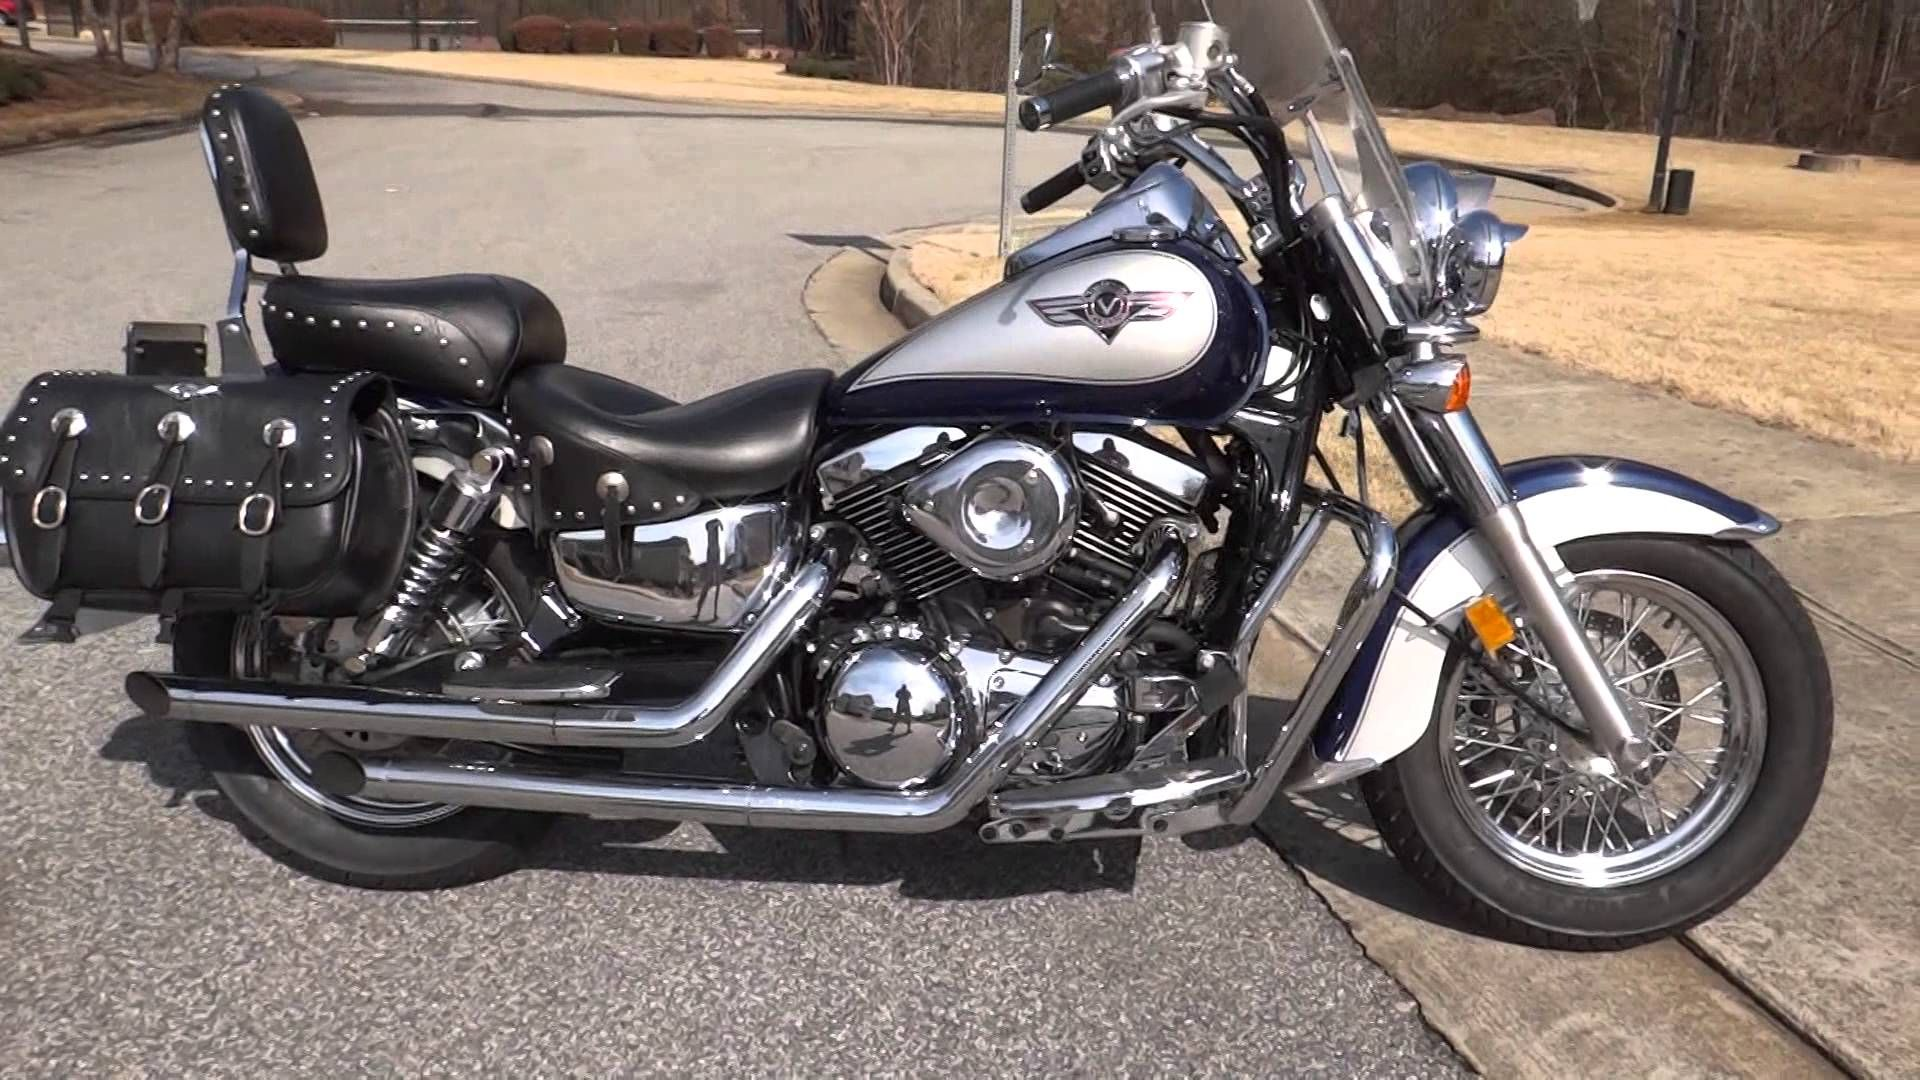 Specification Of Kawasaki Vulcan 1500 Classic 1999 Kawasaki Vulcan 1500 Kawasaki Vulcan Mustang Seats